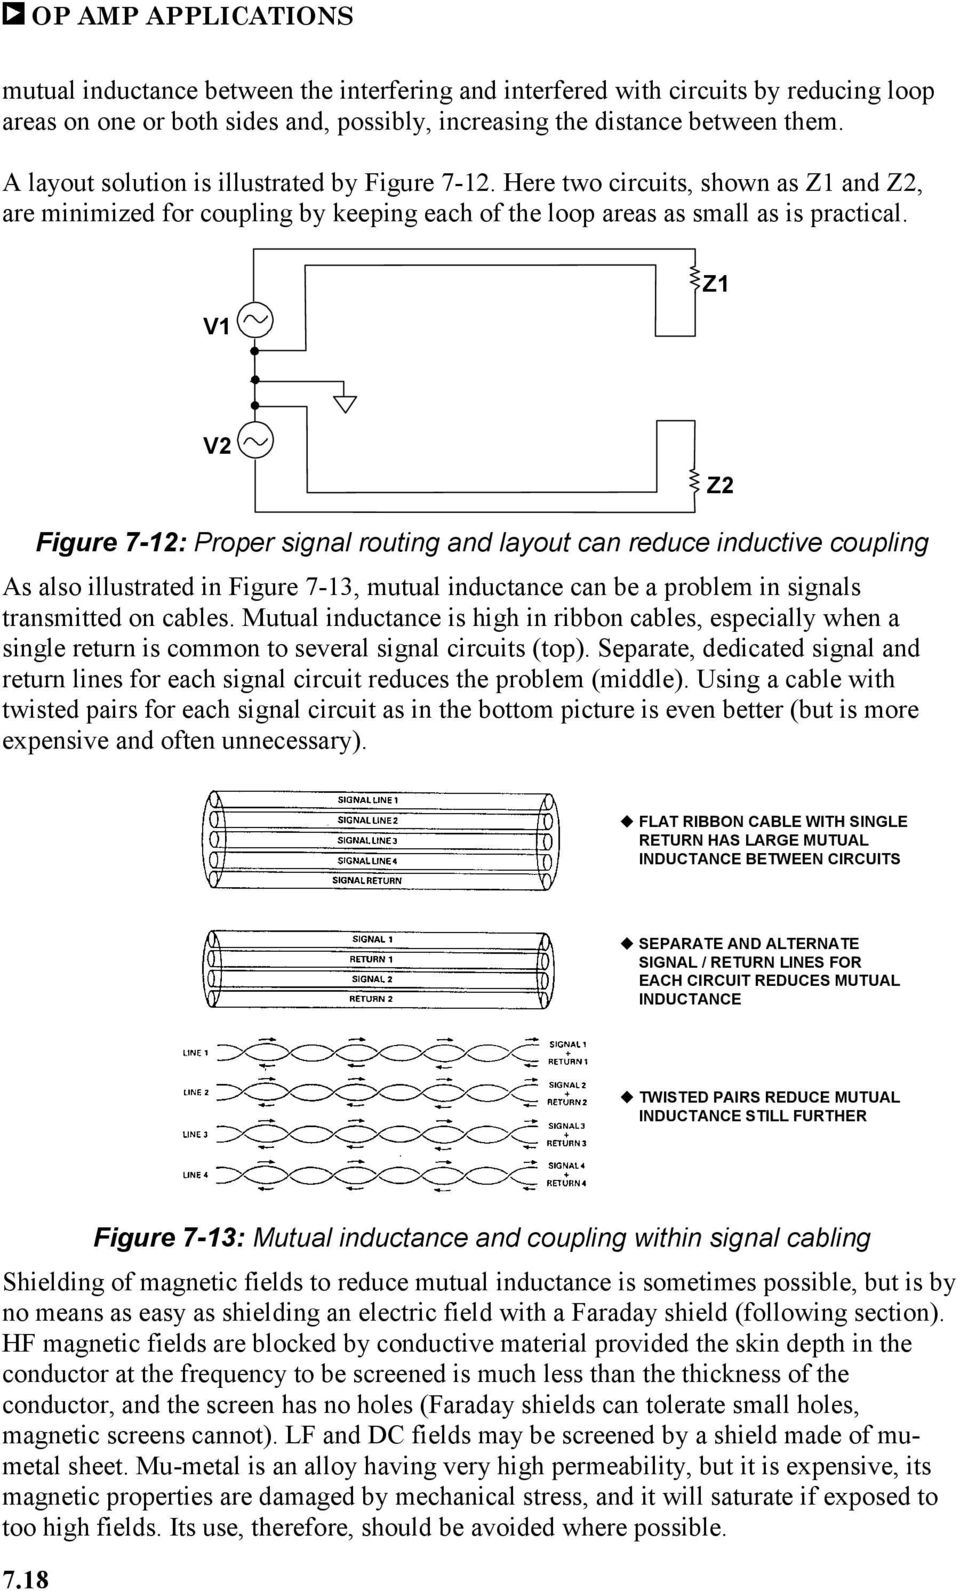 V1 Z1 V2 Z2 Figure 7-12: Proper signal routing and layout can reduce inductive coupling As also illustrated in Figure 7-13, mutual inductance can be a problem in signals transmitted on cables.